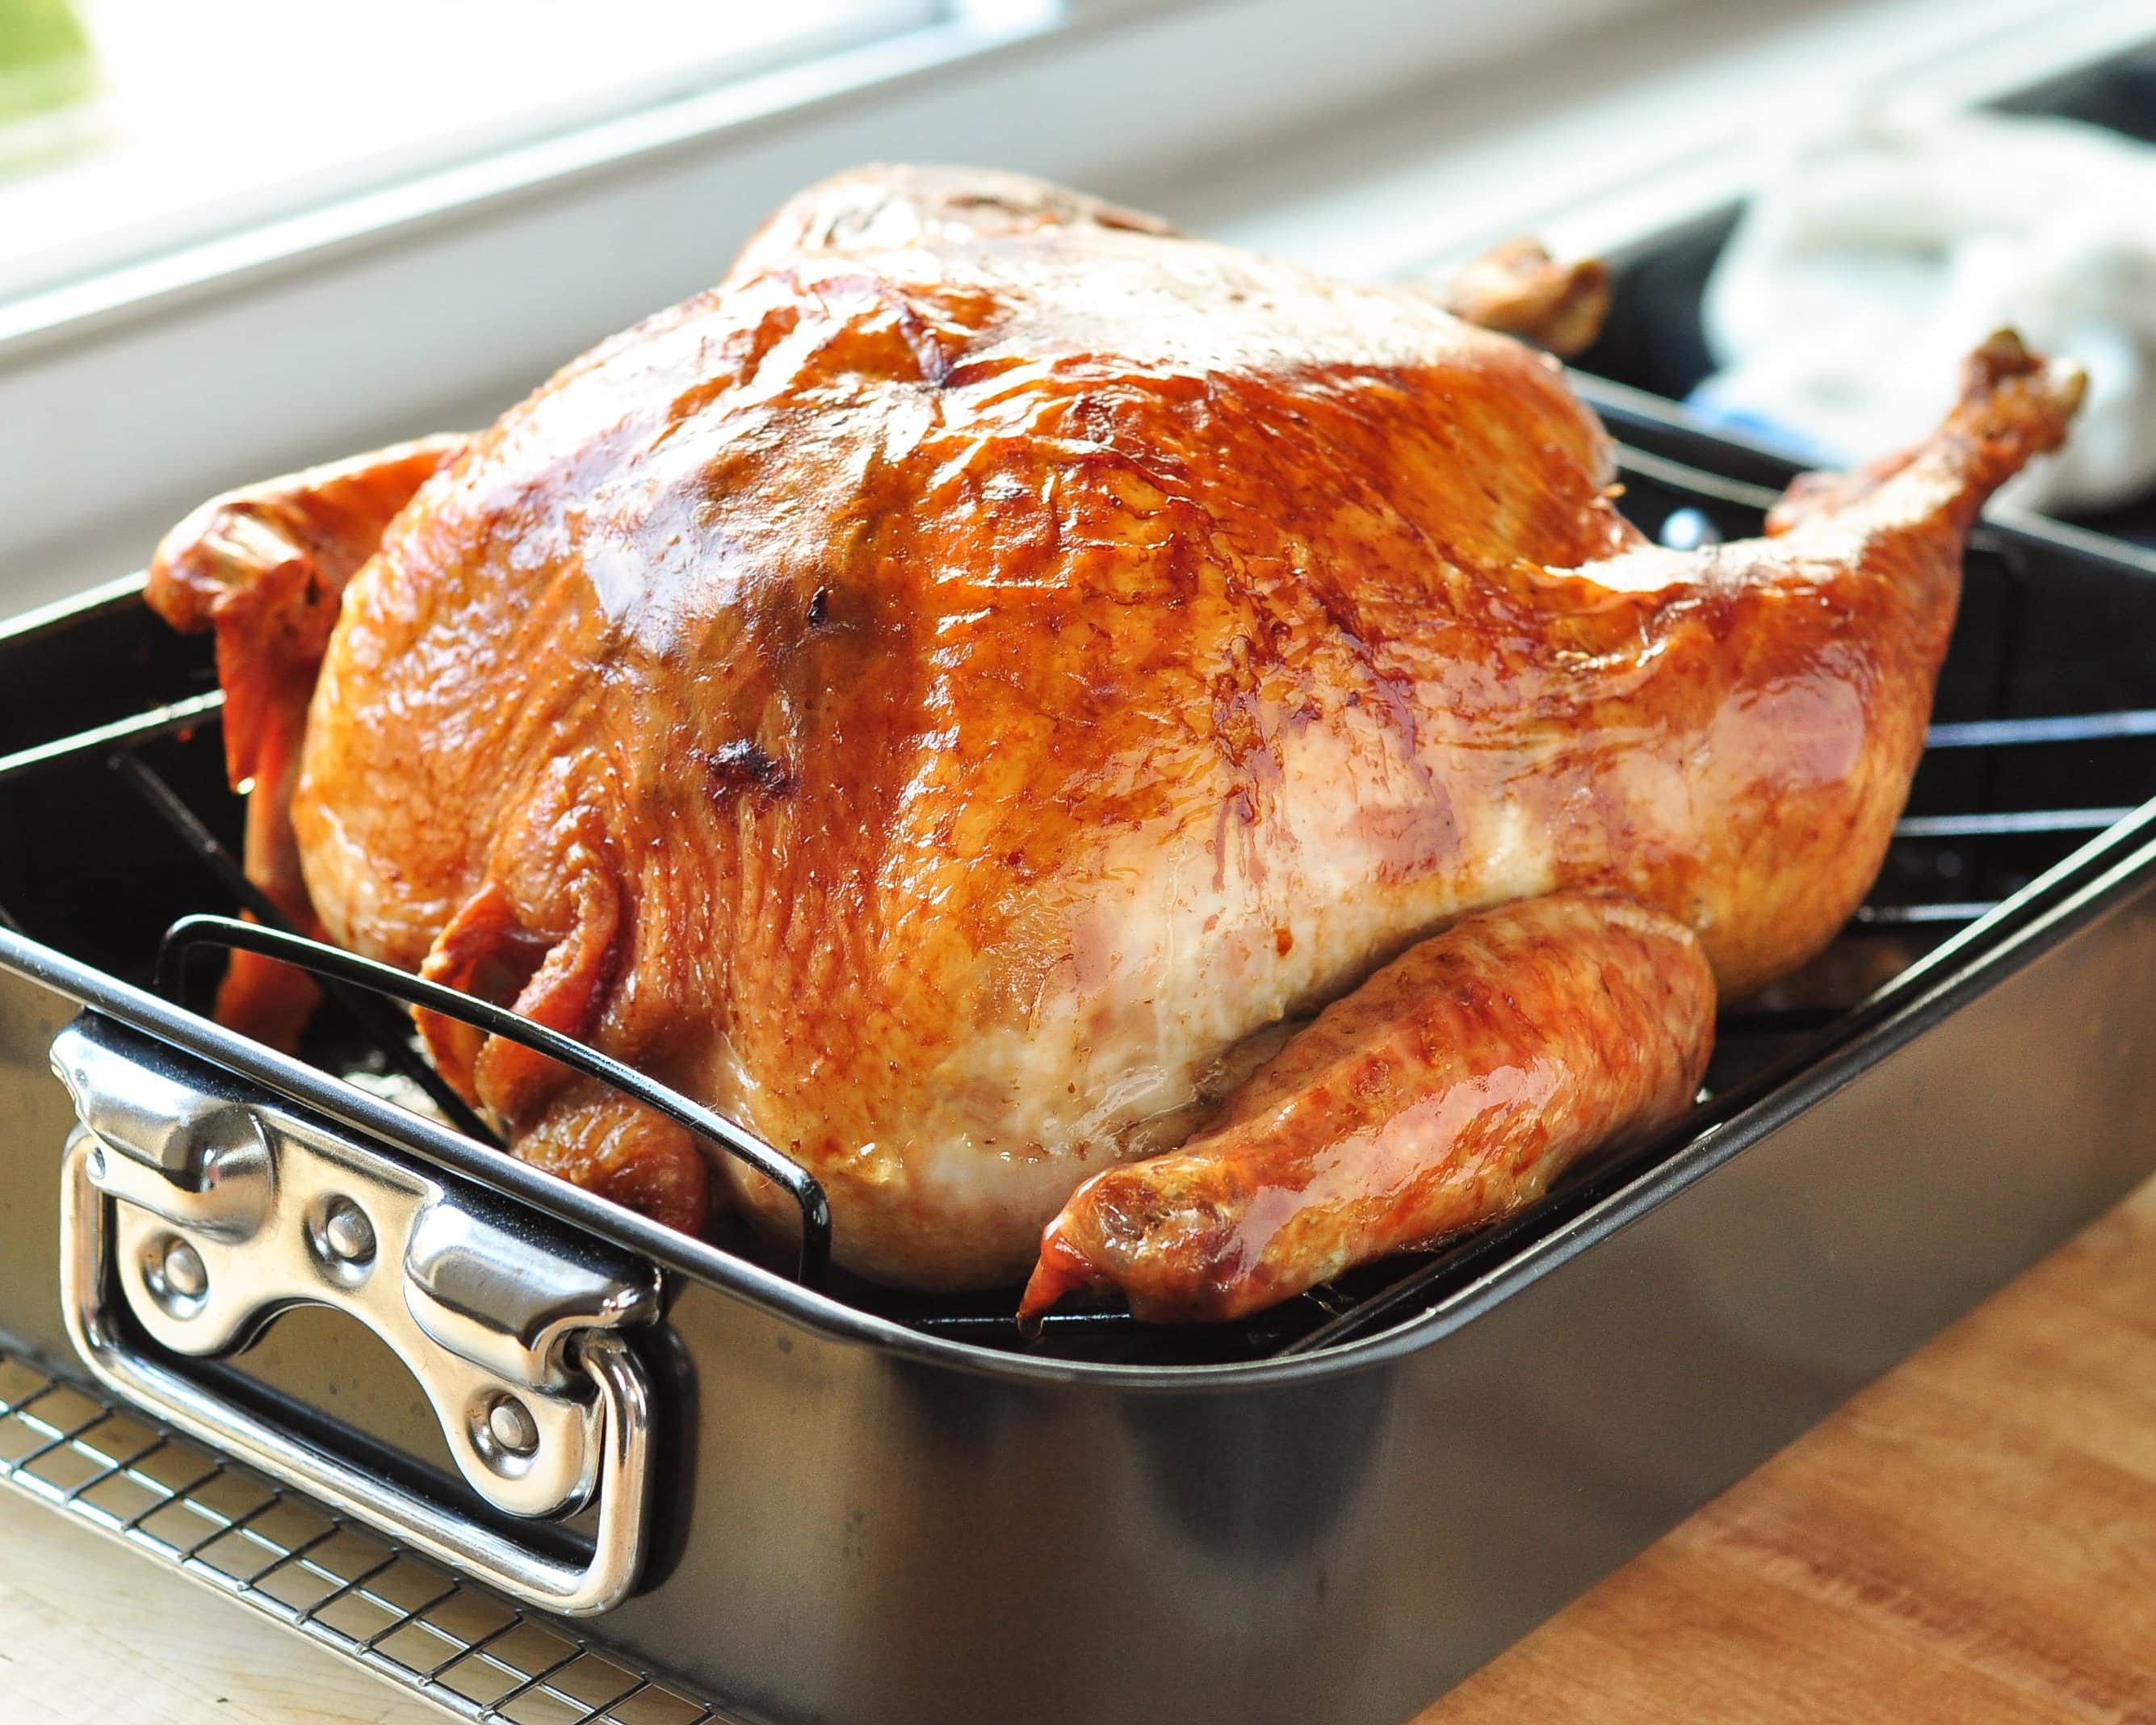 Cook Thanksgiving Turkey  How To Cook a Turkey The Simplest Easiest Method